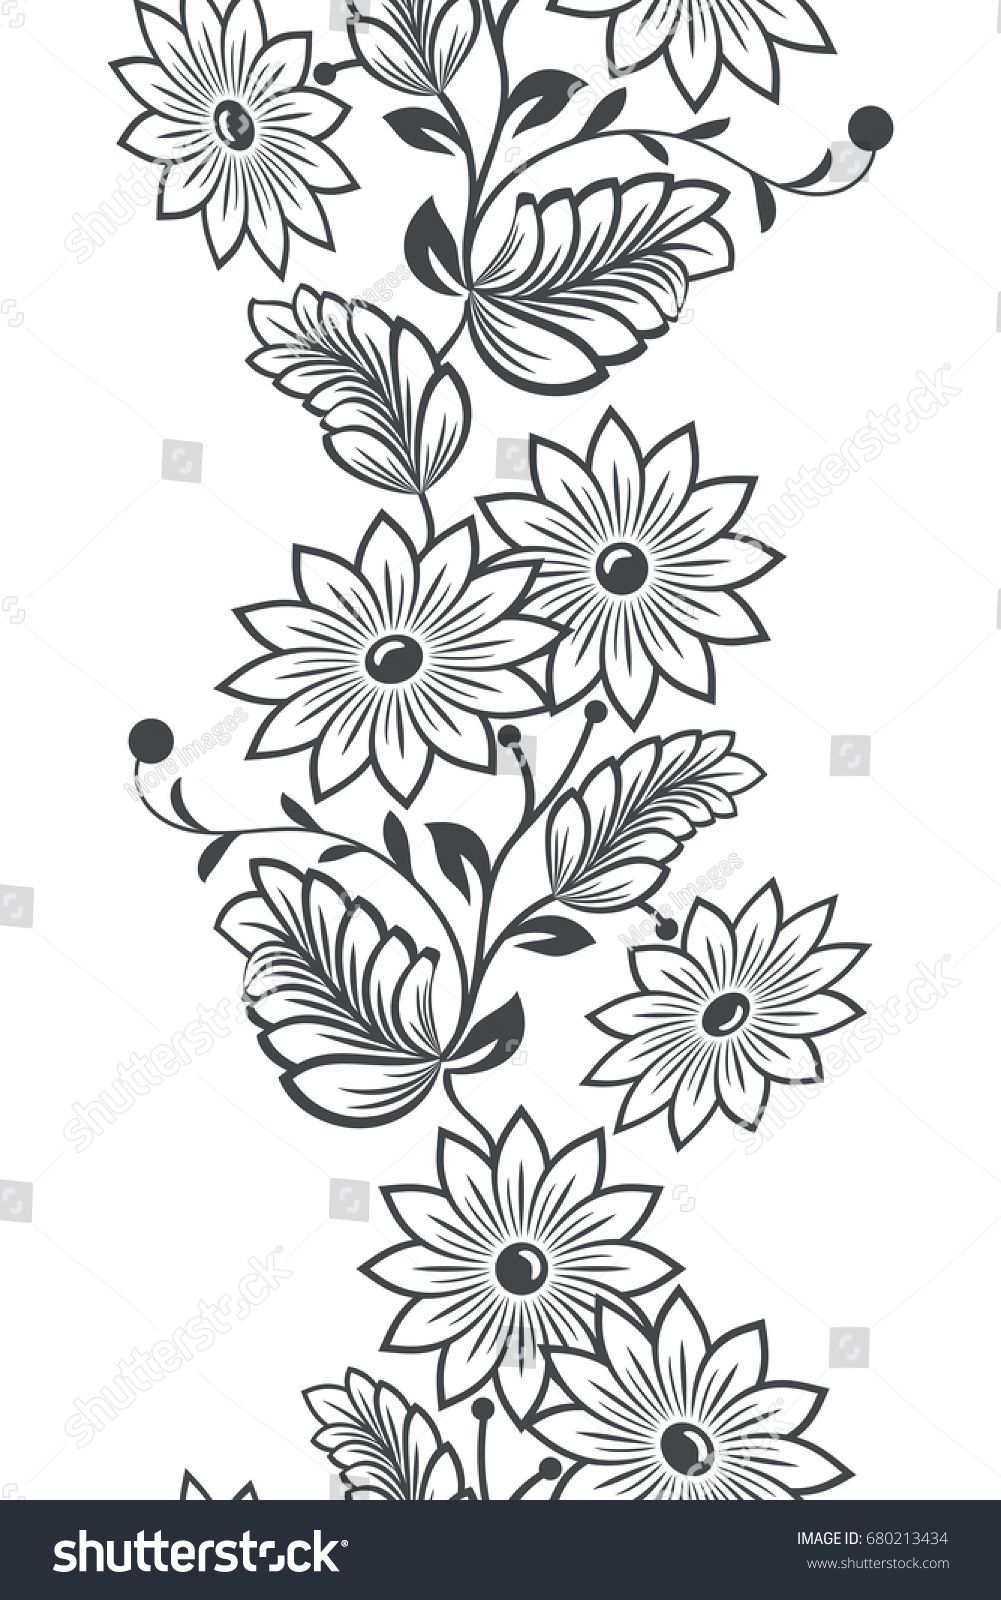 Seamless black and white vertical flower ornament. Vector